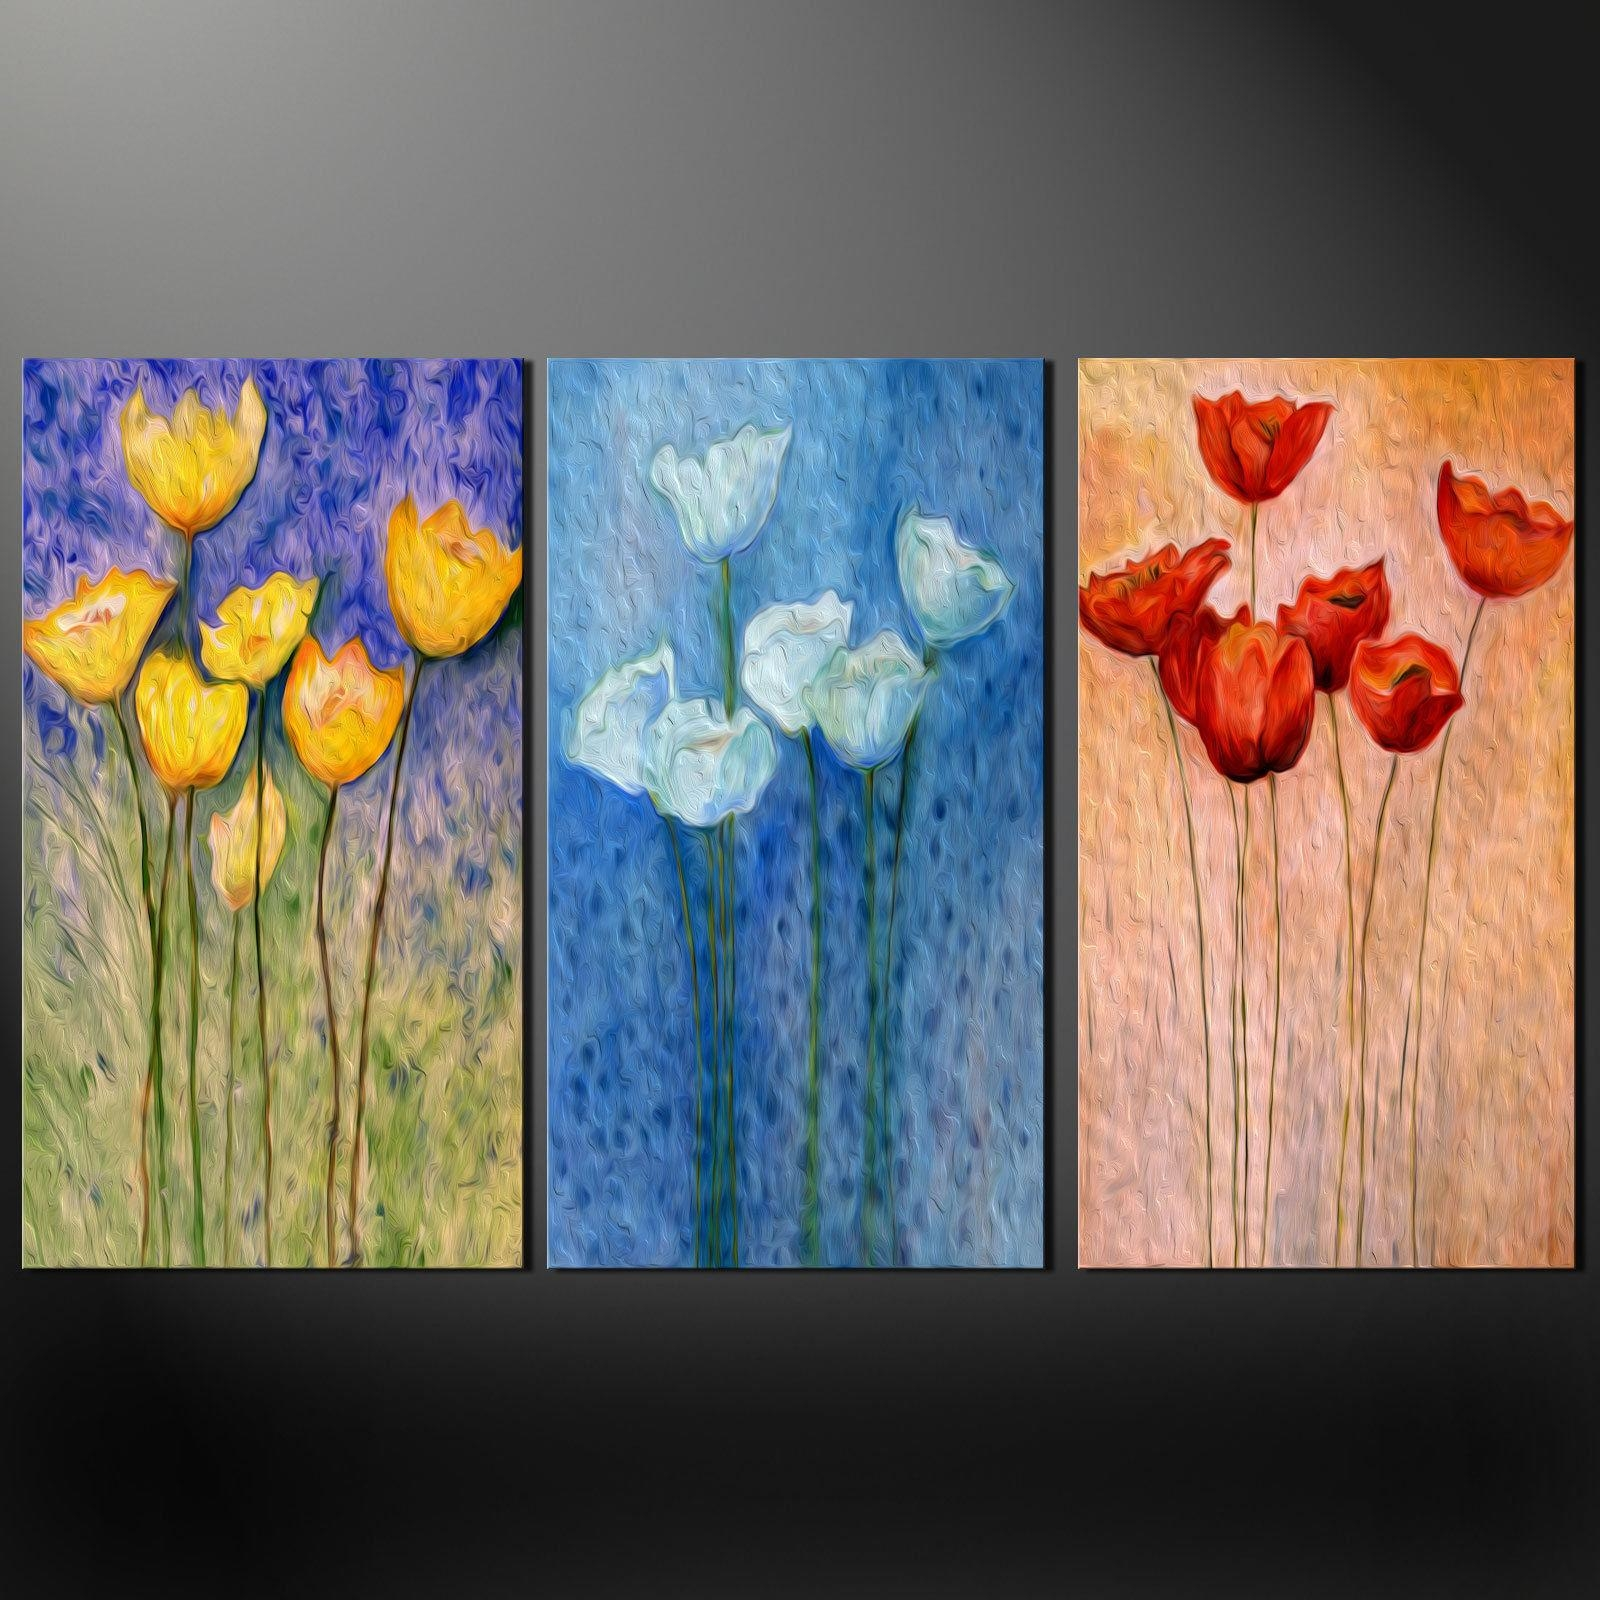 Floral Design Poppies 3 Panels Split Canvas Wall Art Pictures Within Floral Wall Art Canvas (Image 9 of 20)